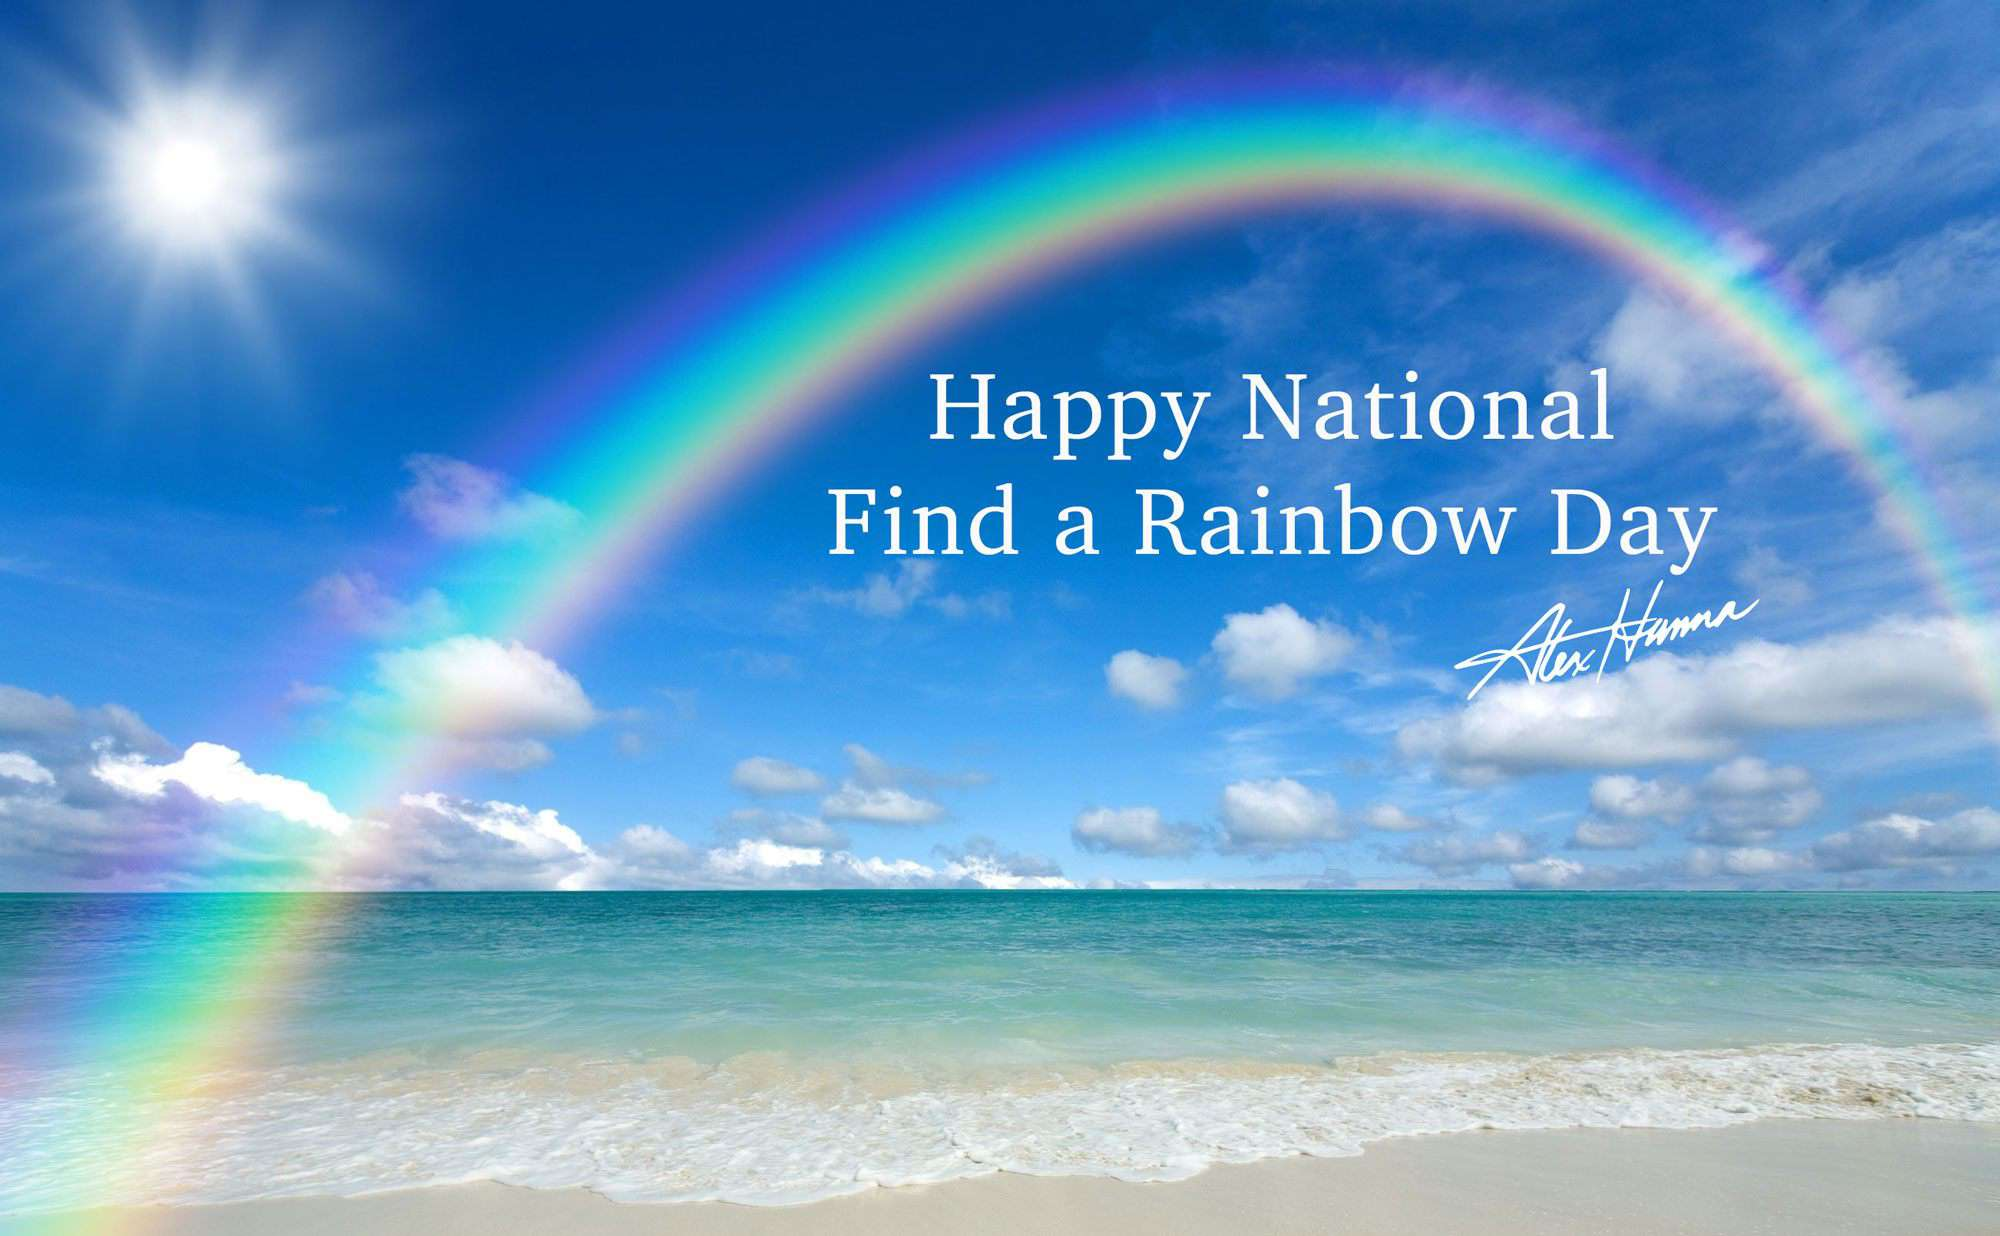 National Find a Rainbow Day Wishes for Instagram